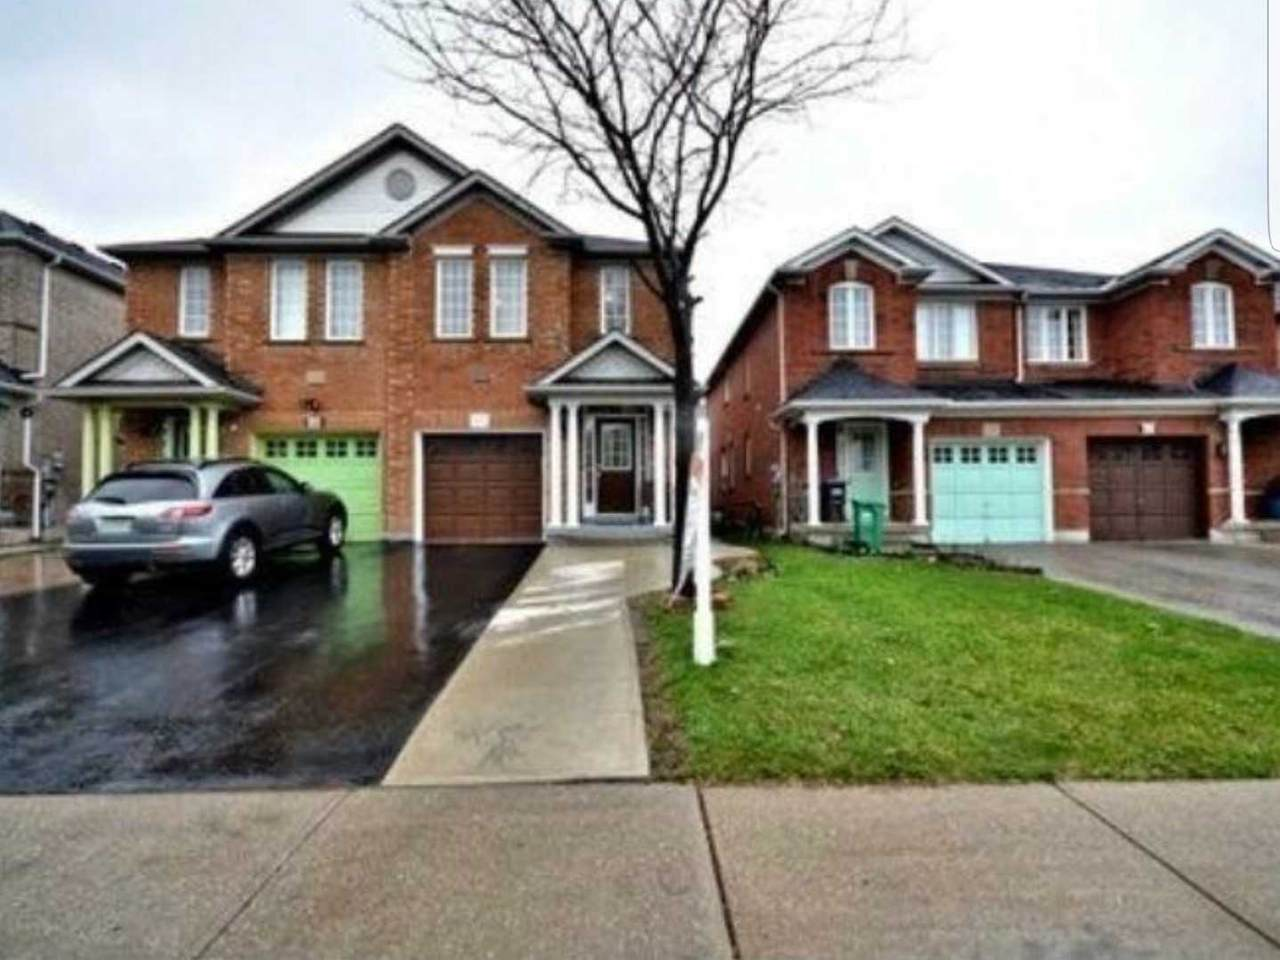 66 Feather Reed Way - Photo 1